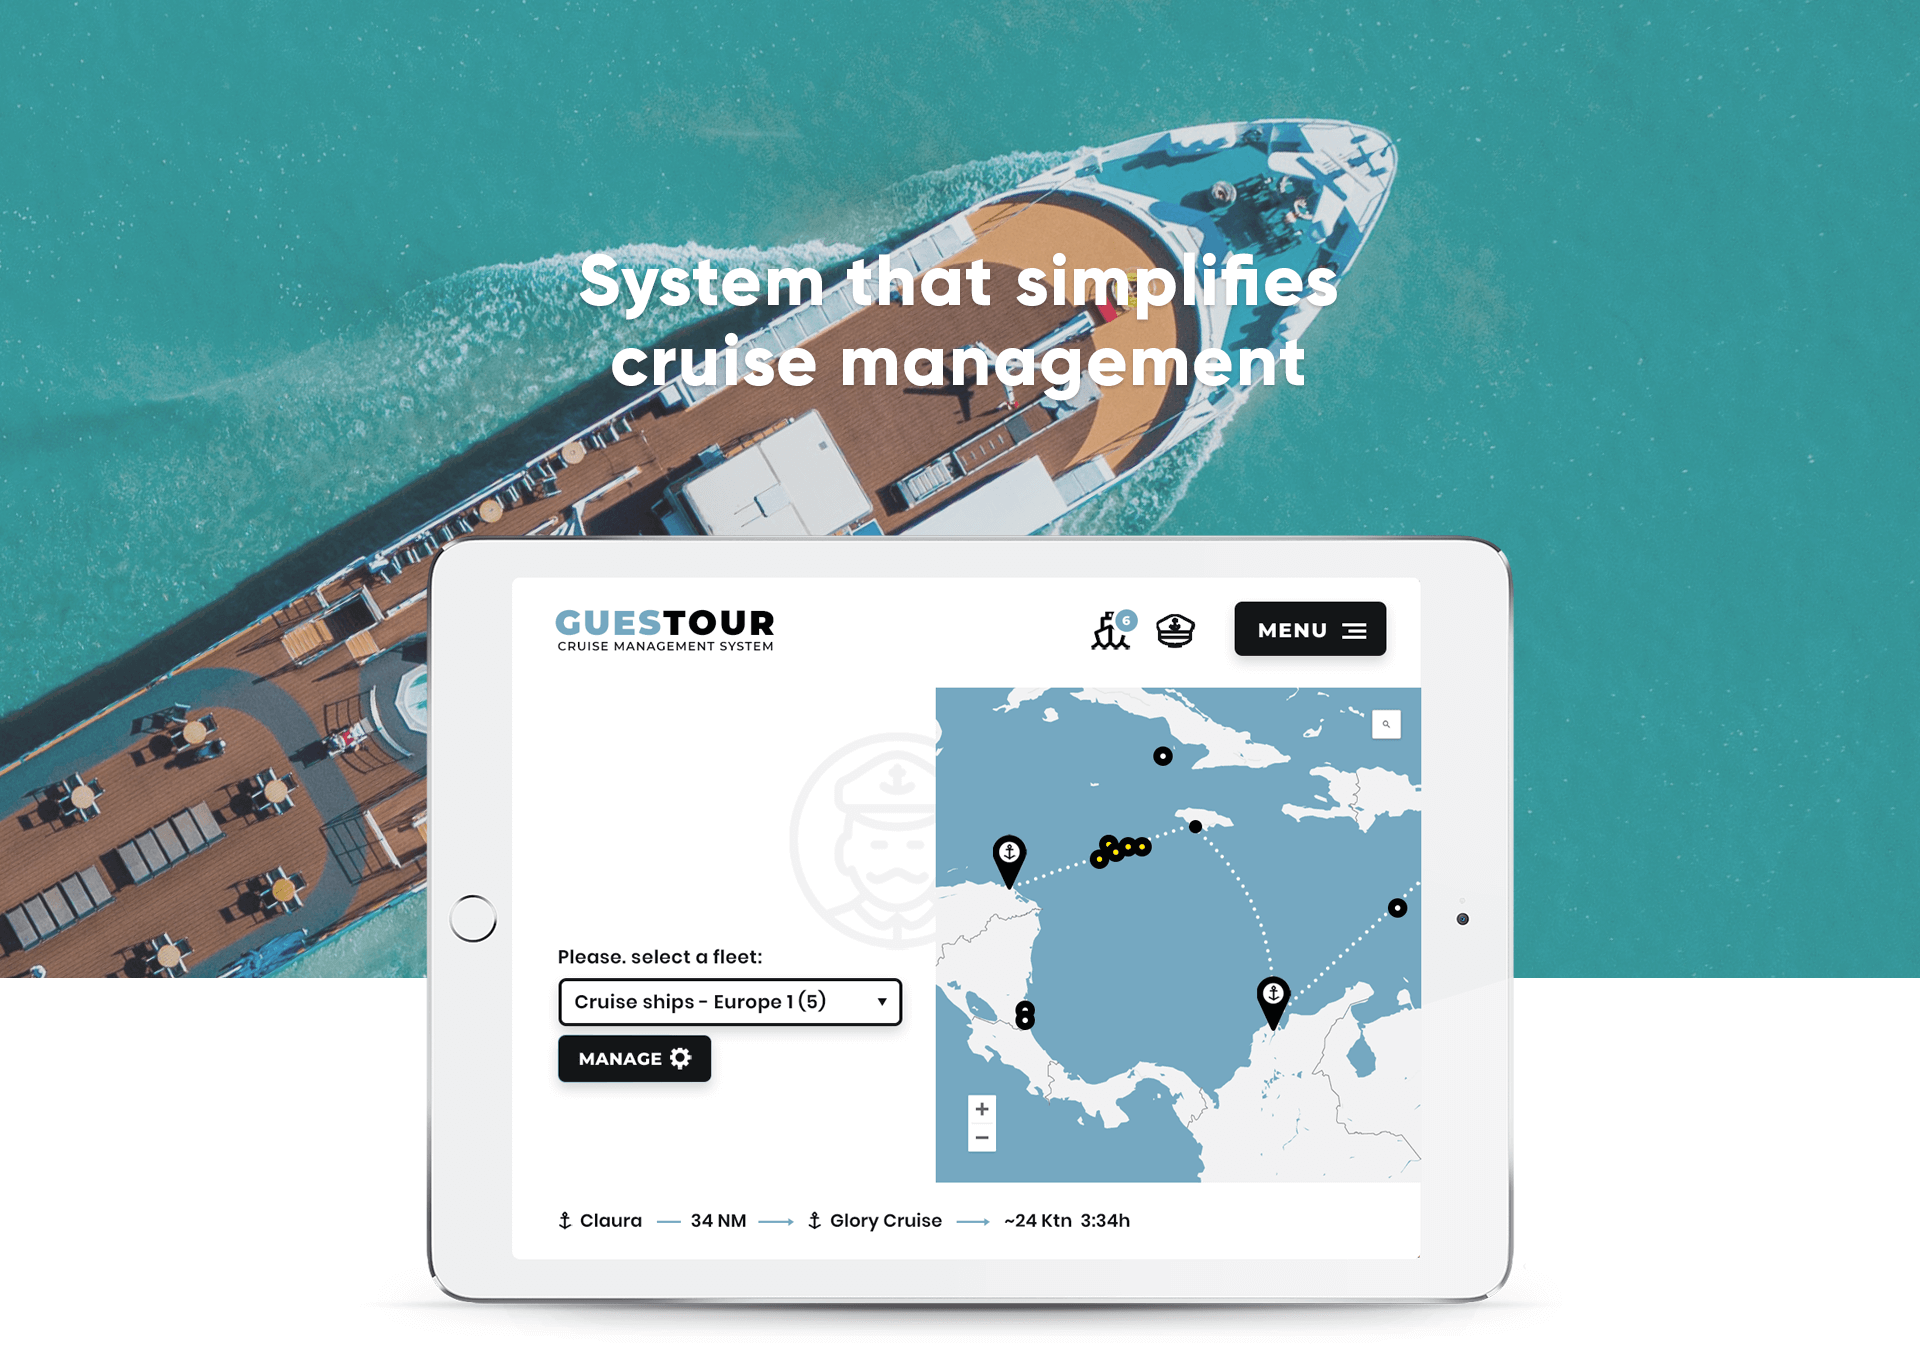 System that simplifies cruise management